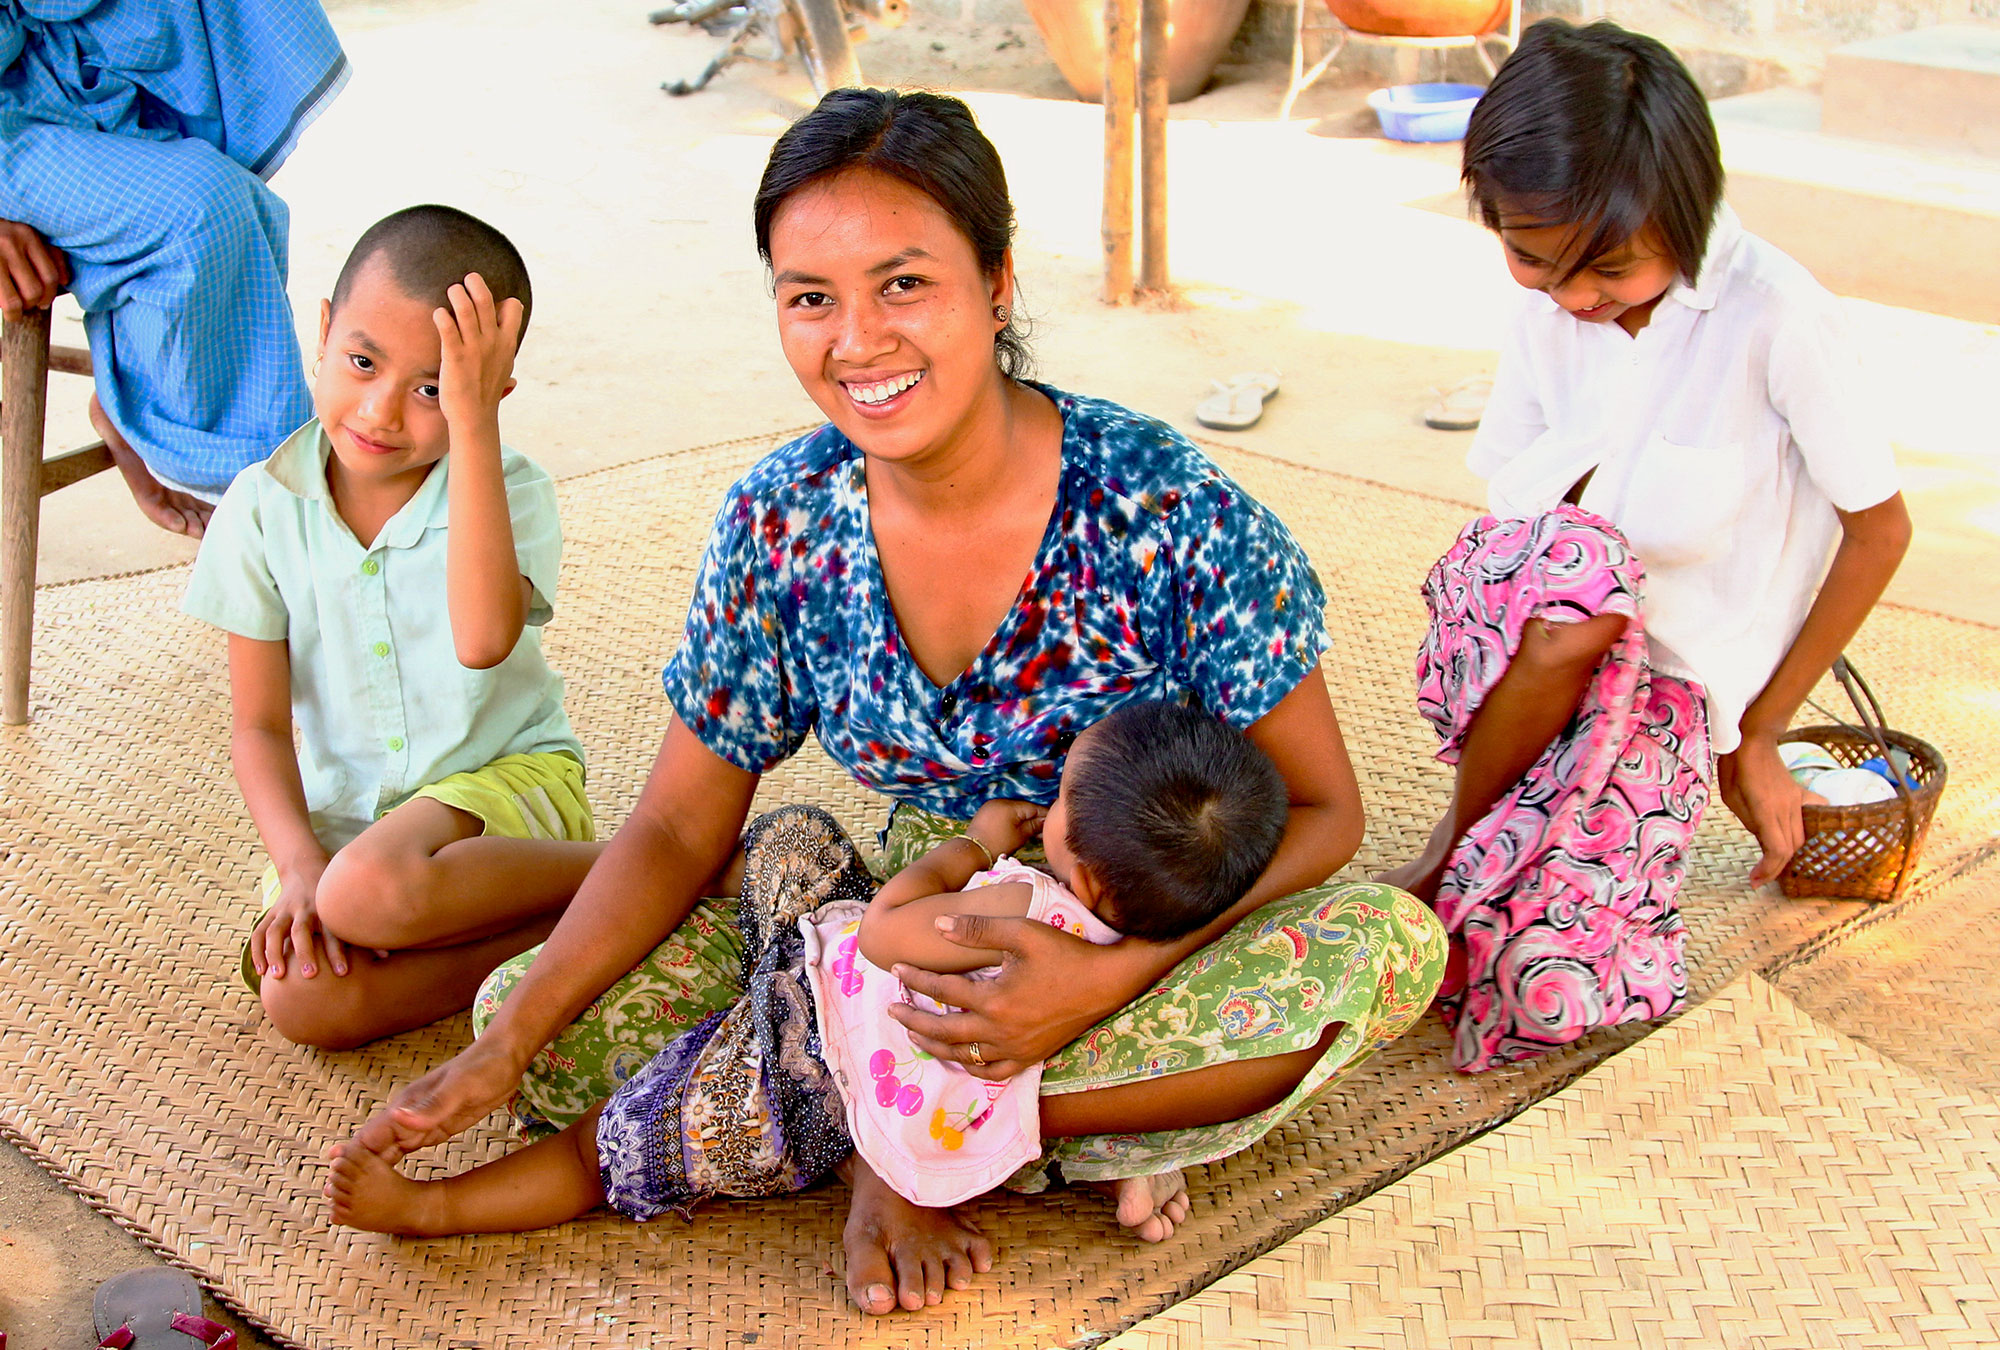 Smiling woman with three children